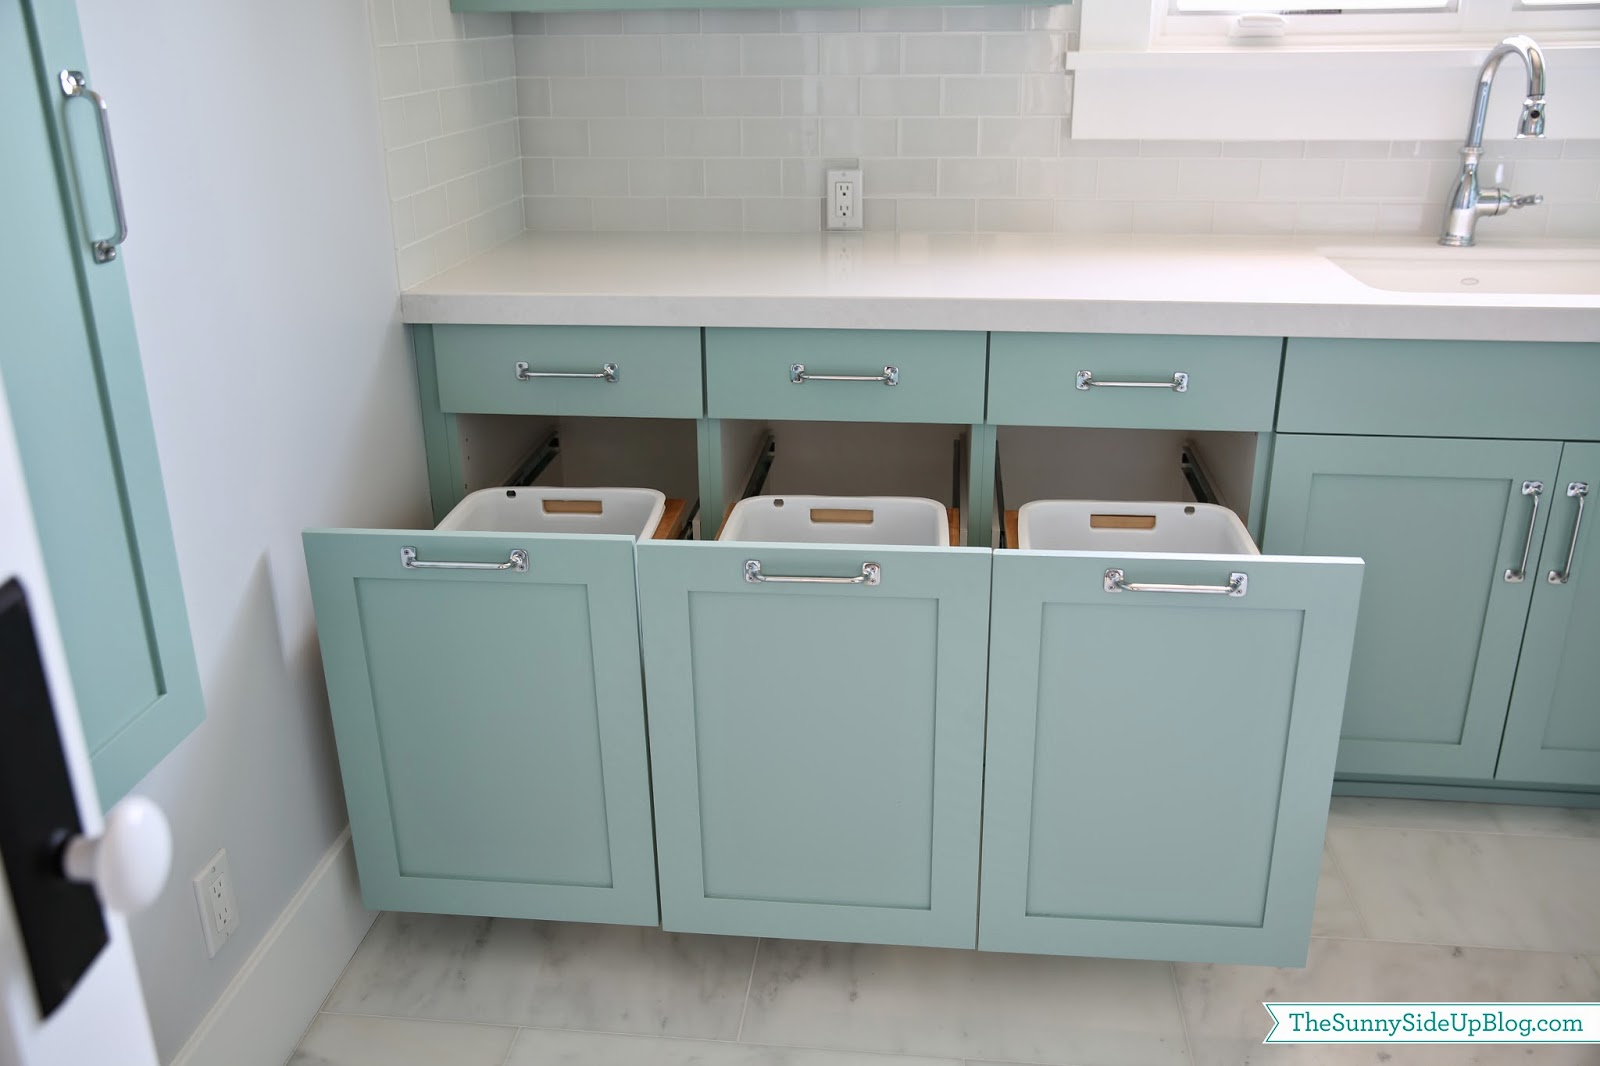 Upstairs laundry room the sunny side up blog - Laundry hampers for small spaces plan ...